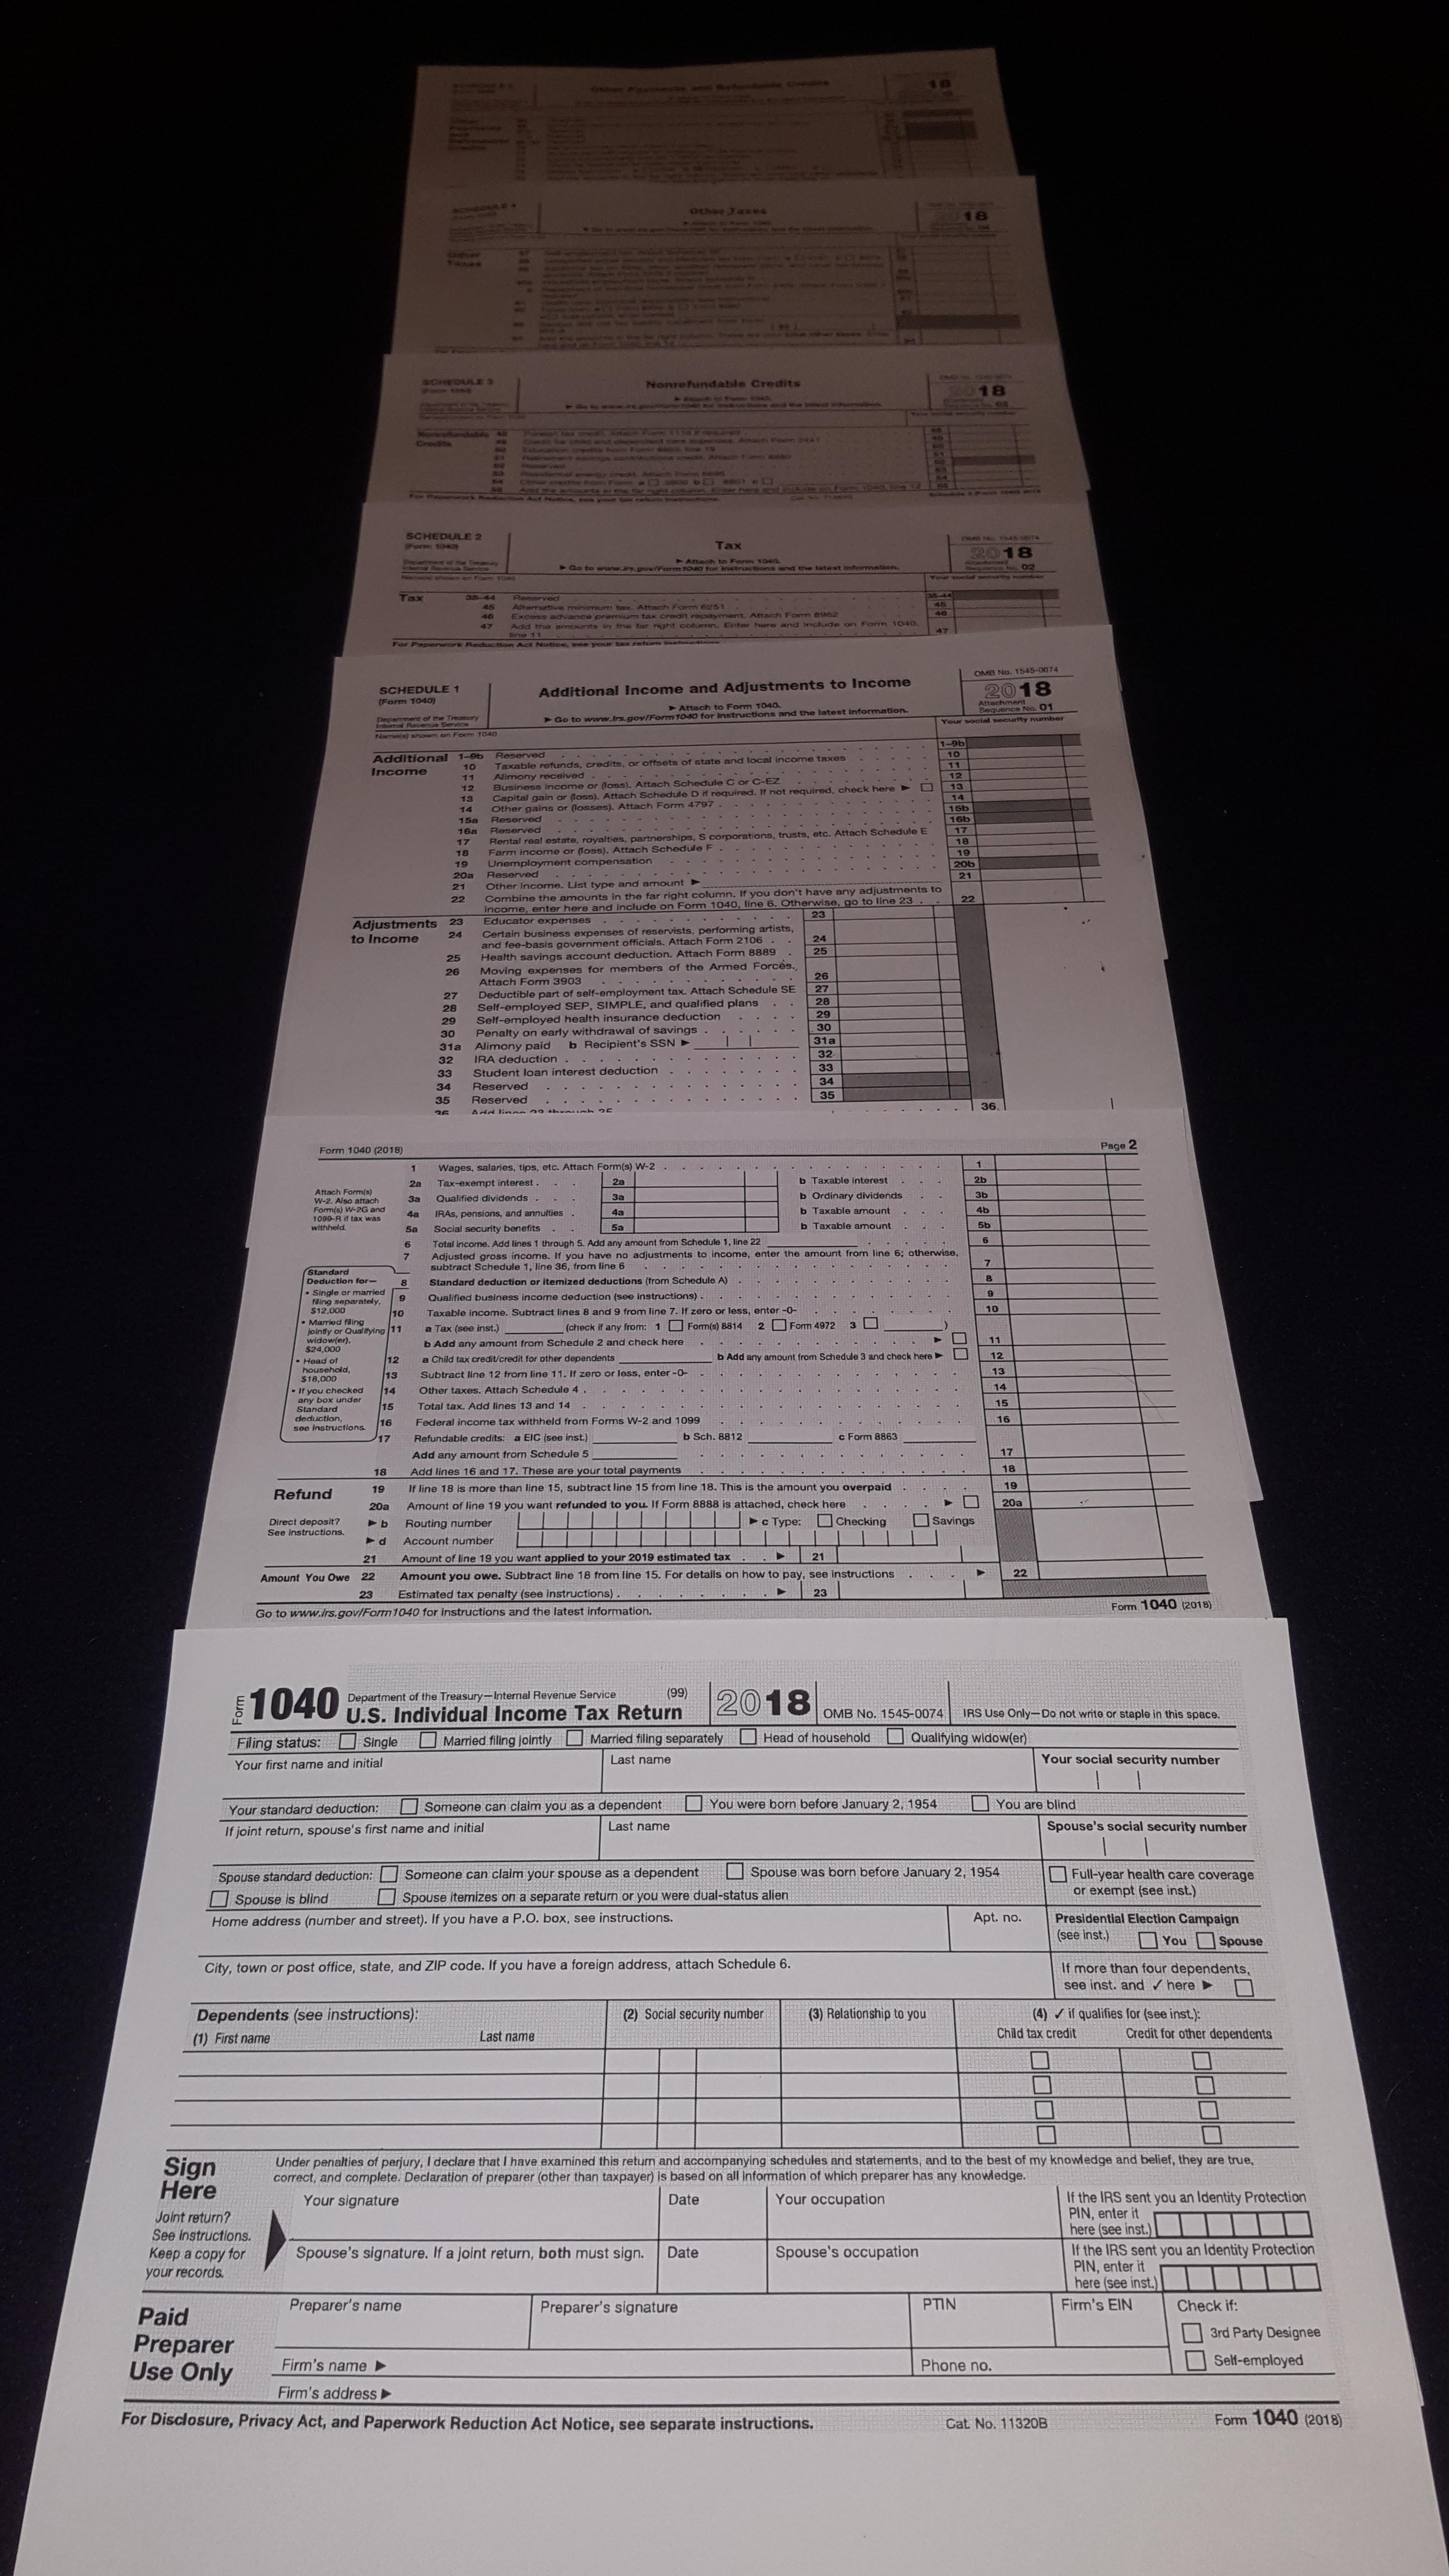 Professional Tax Services of Long Island LLC image 6